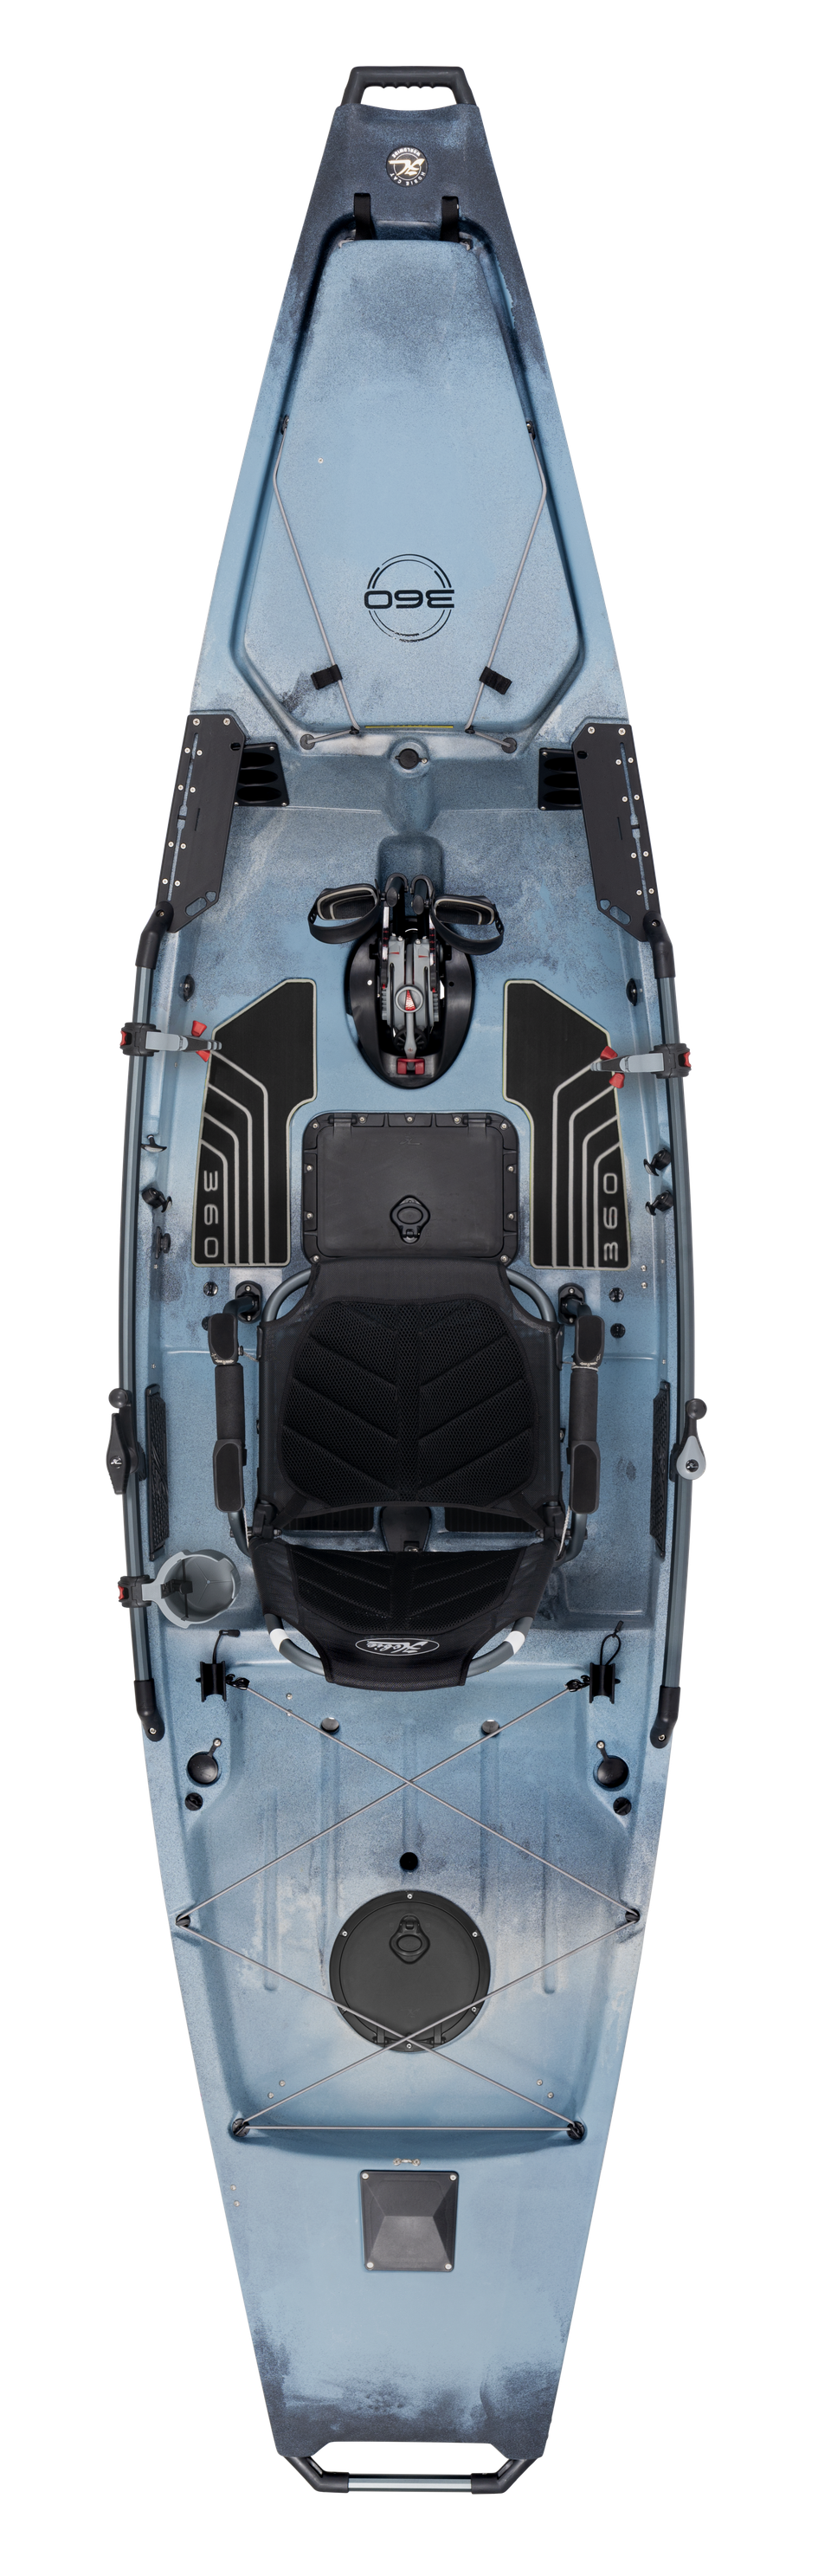 Mirage Pro Angler 14 with 360 Drive Technology Product Image